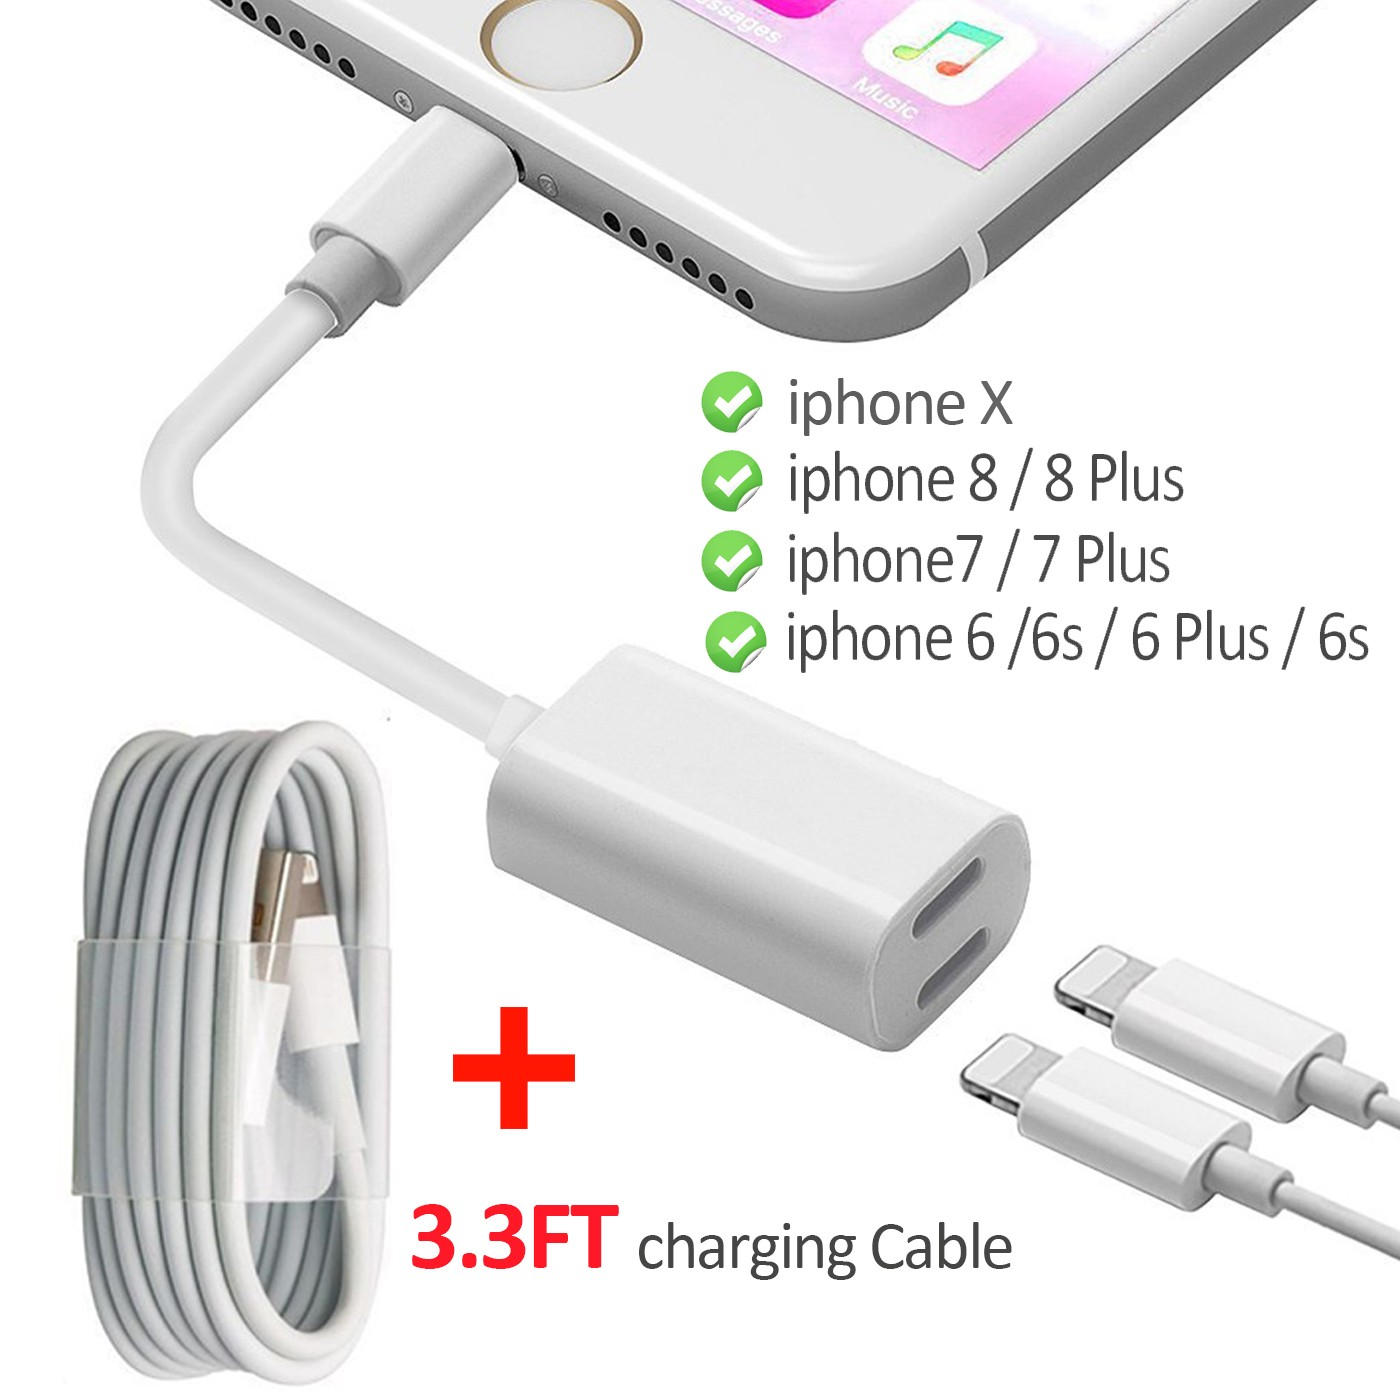 2 In 1 Lightning Adapter For IPhone 7 Plus 8 X Dual Charging Cable And Headphone Jack Splitter Audio Charge